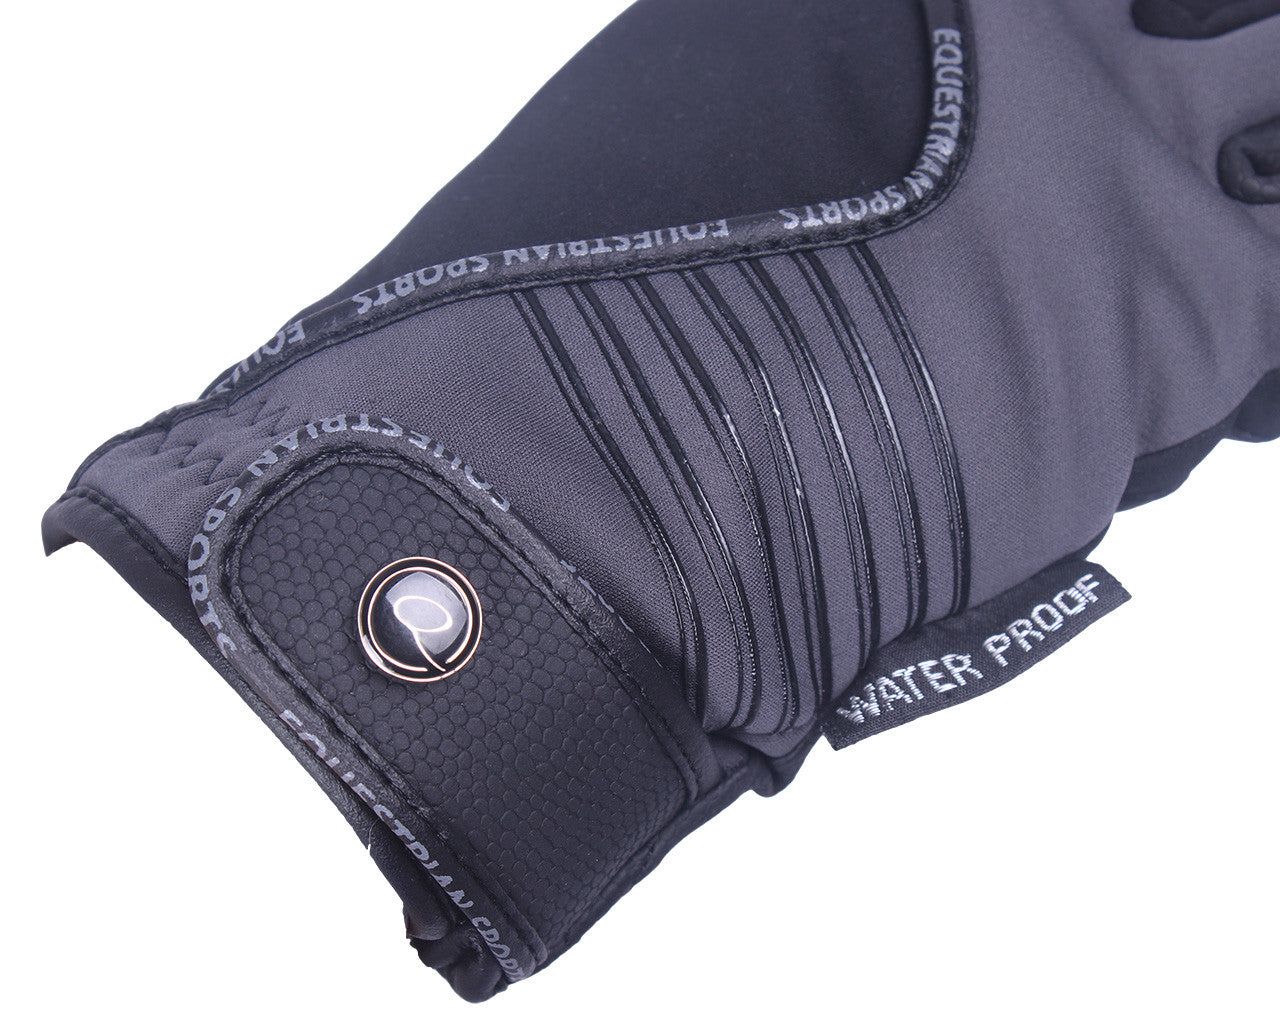 Tromso Waterproof Riding Glove